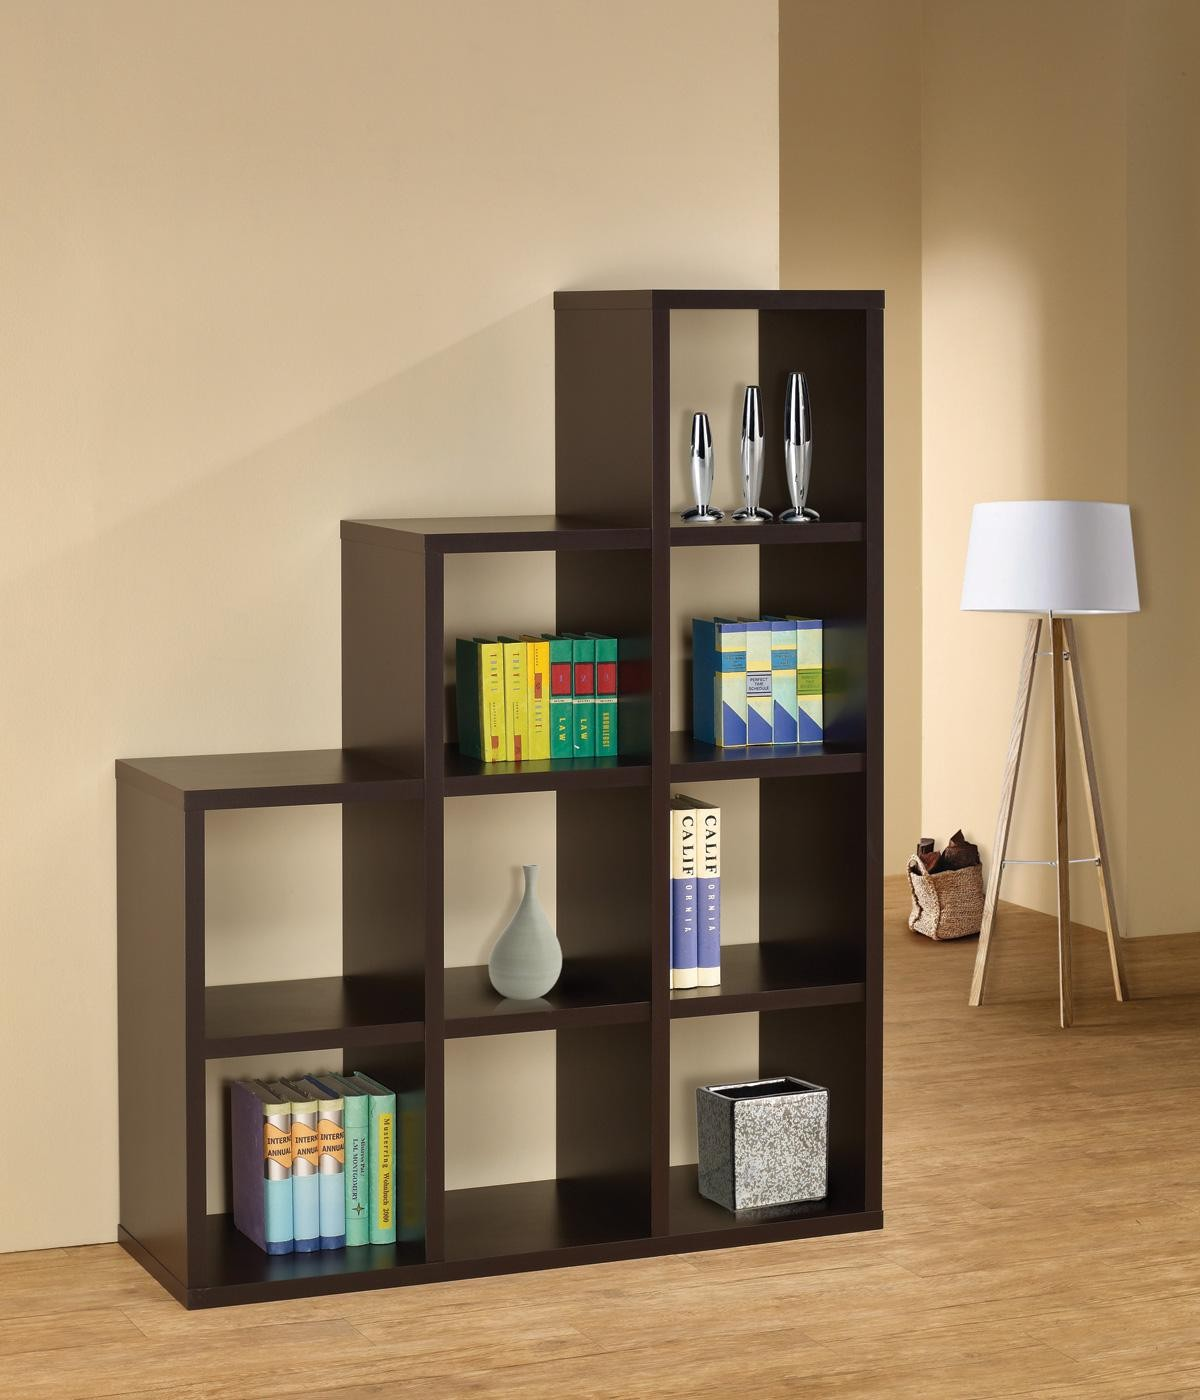 Wall Cubes Ikea Cube Bookshelf: Best Cube Shelving Types And Design Ideas